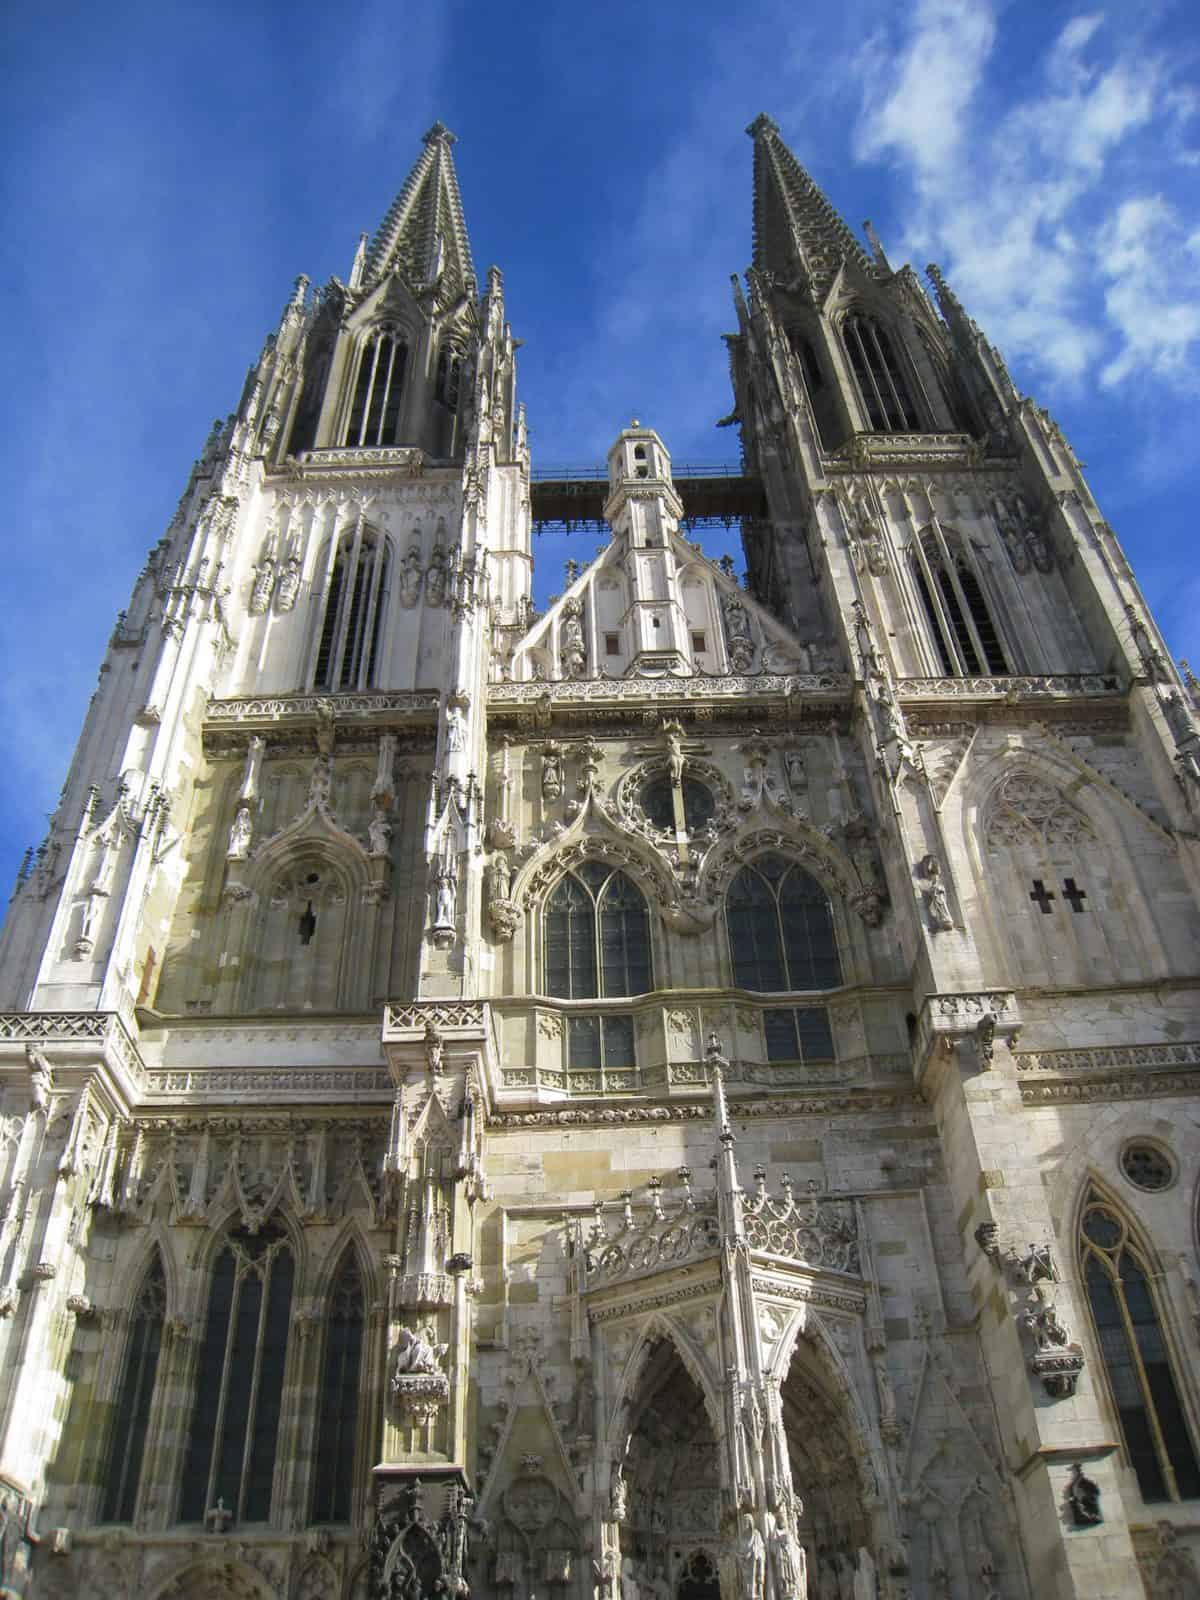 The old cathedral in Regensburg, Germany